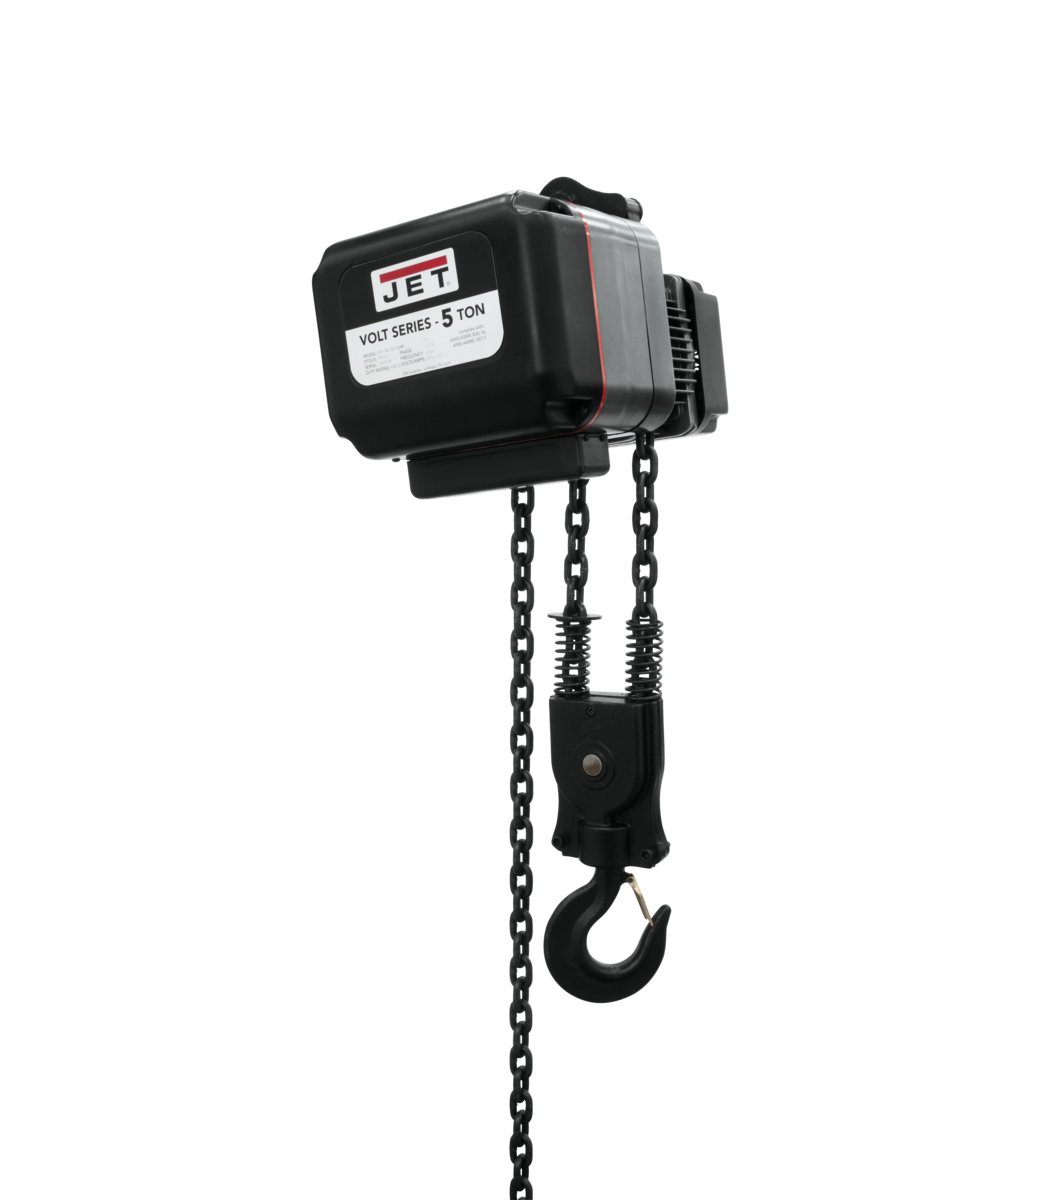 VOLT 5T VARIABLE-SPEED ELECTRIC HOIST  3PH 230V 20' LIFT